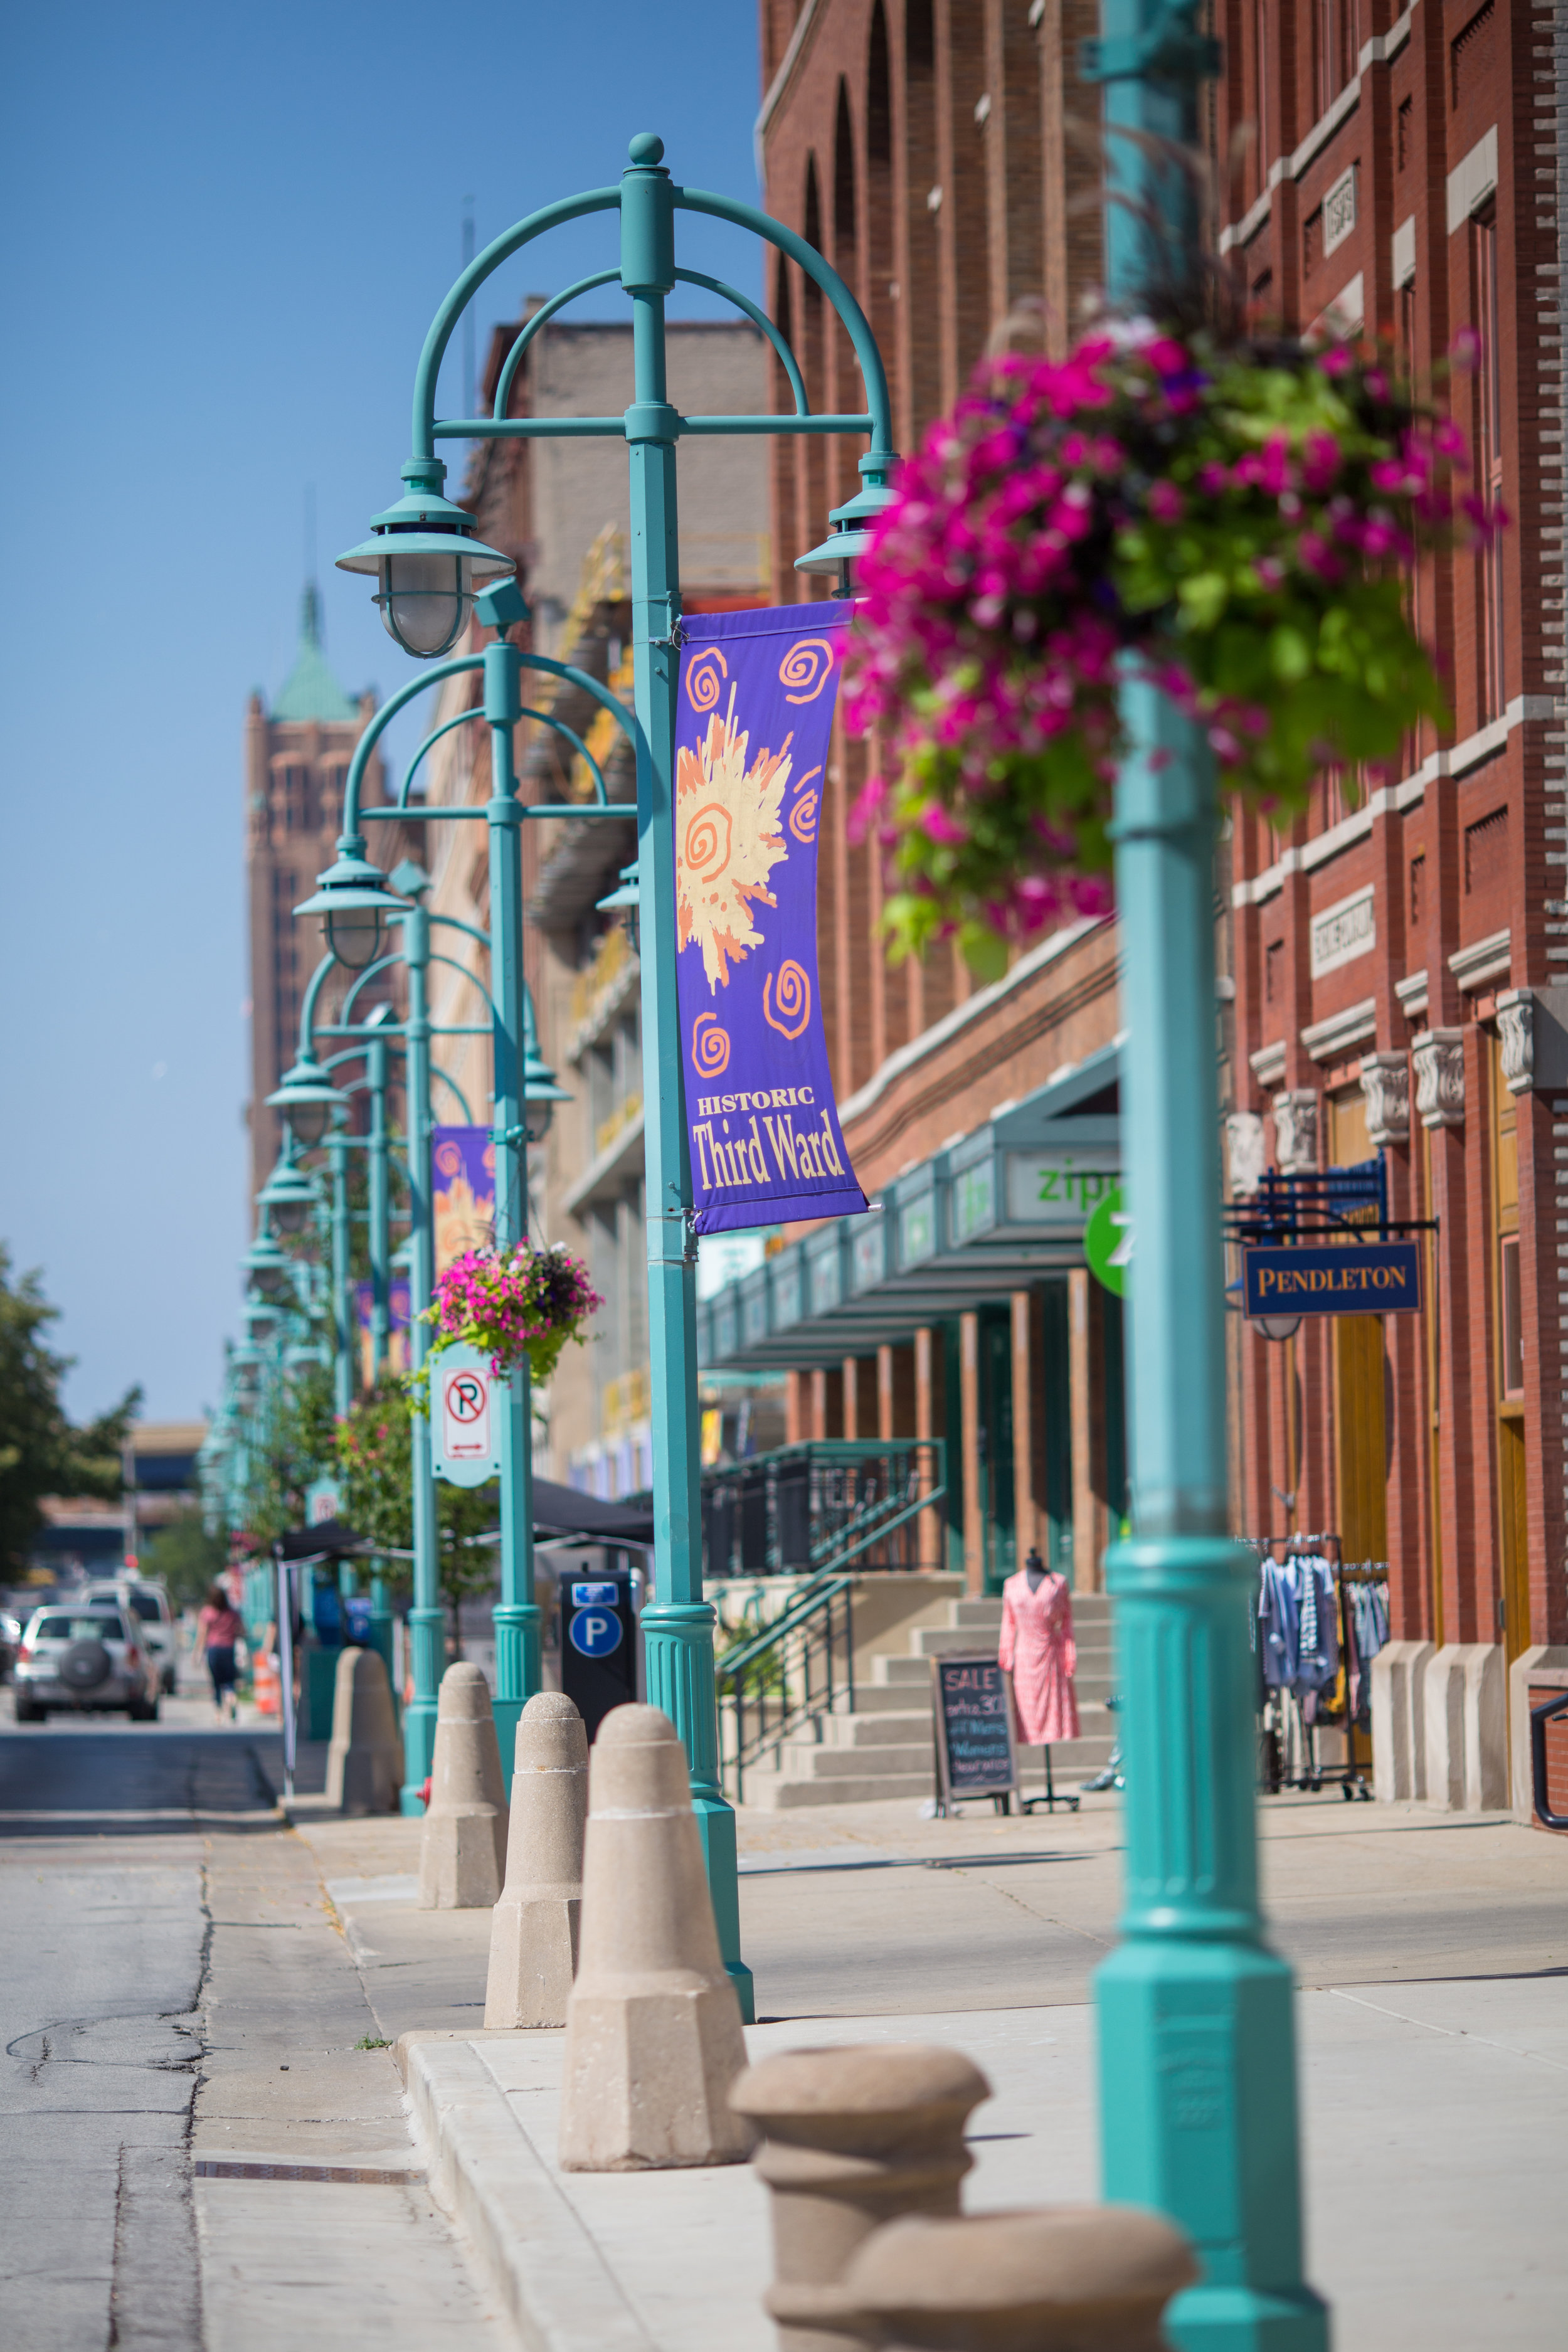 There are lots of shopping and food options in the Historic Third Ward.